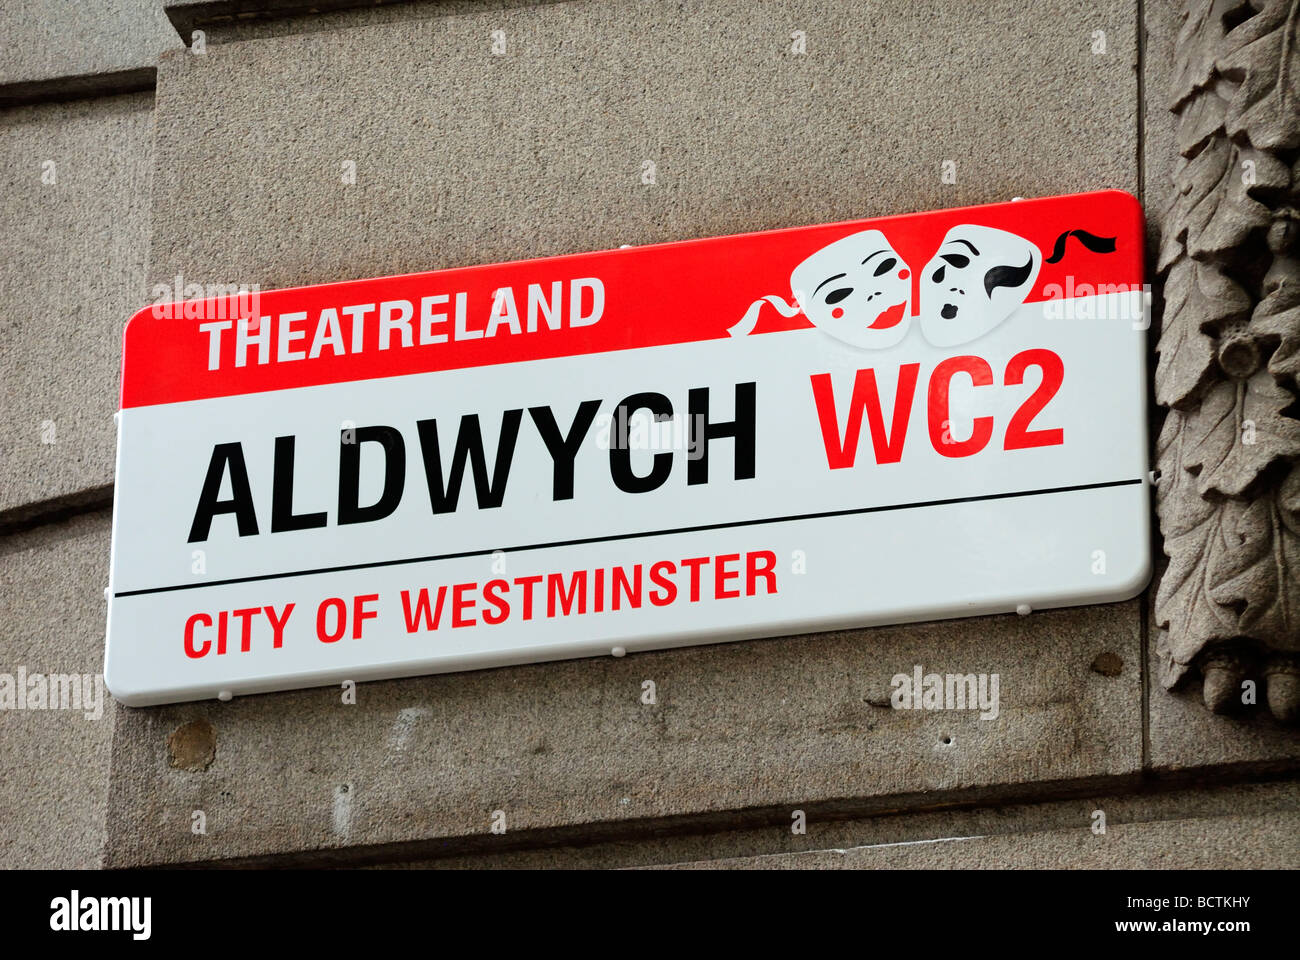 Aldwych Street Sign London England Britain July 09 - Stock Image